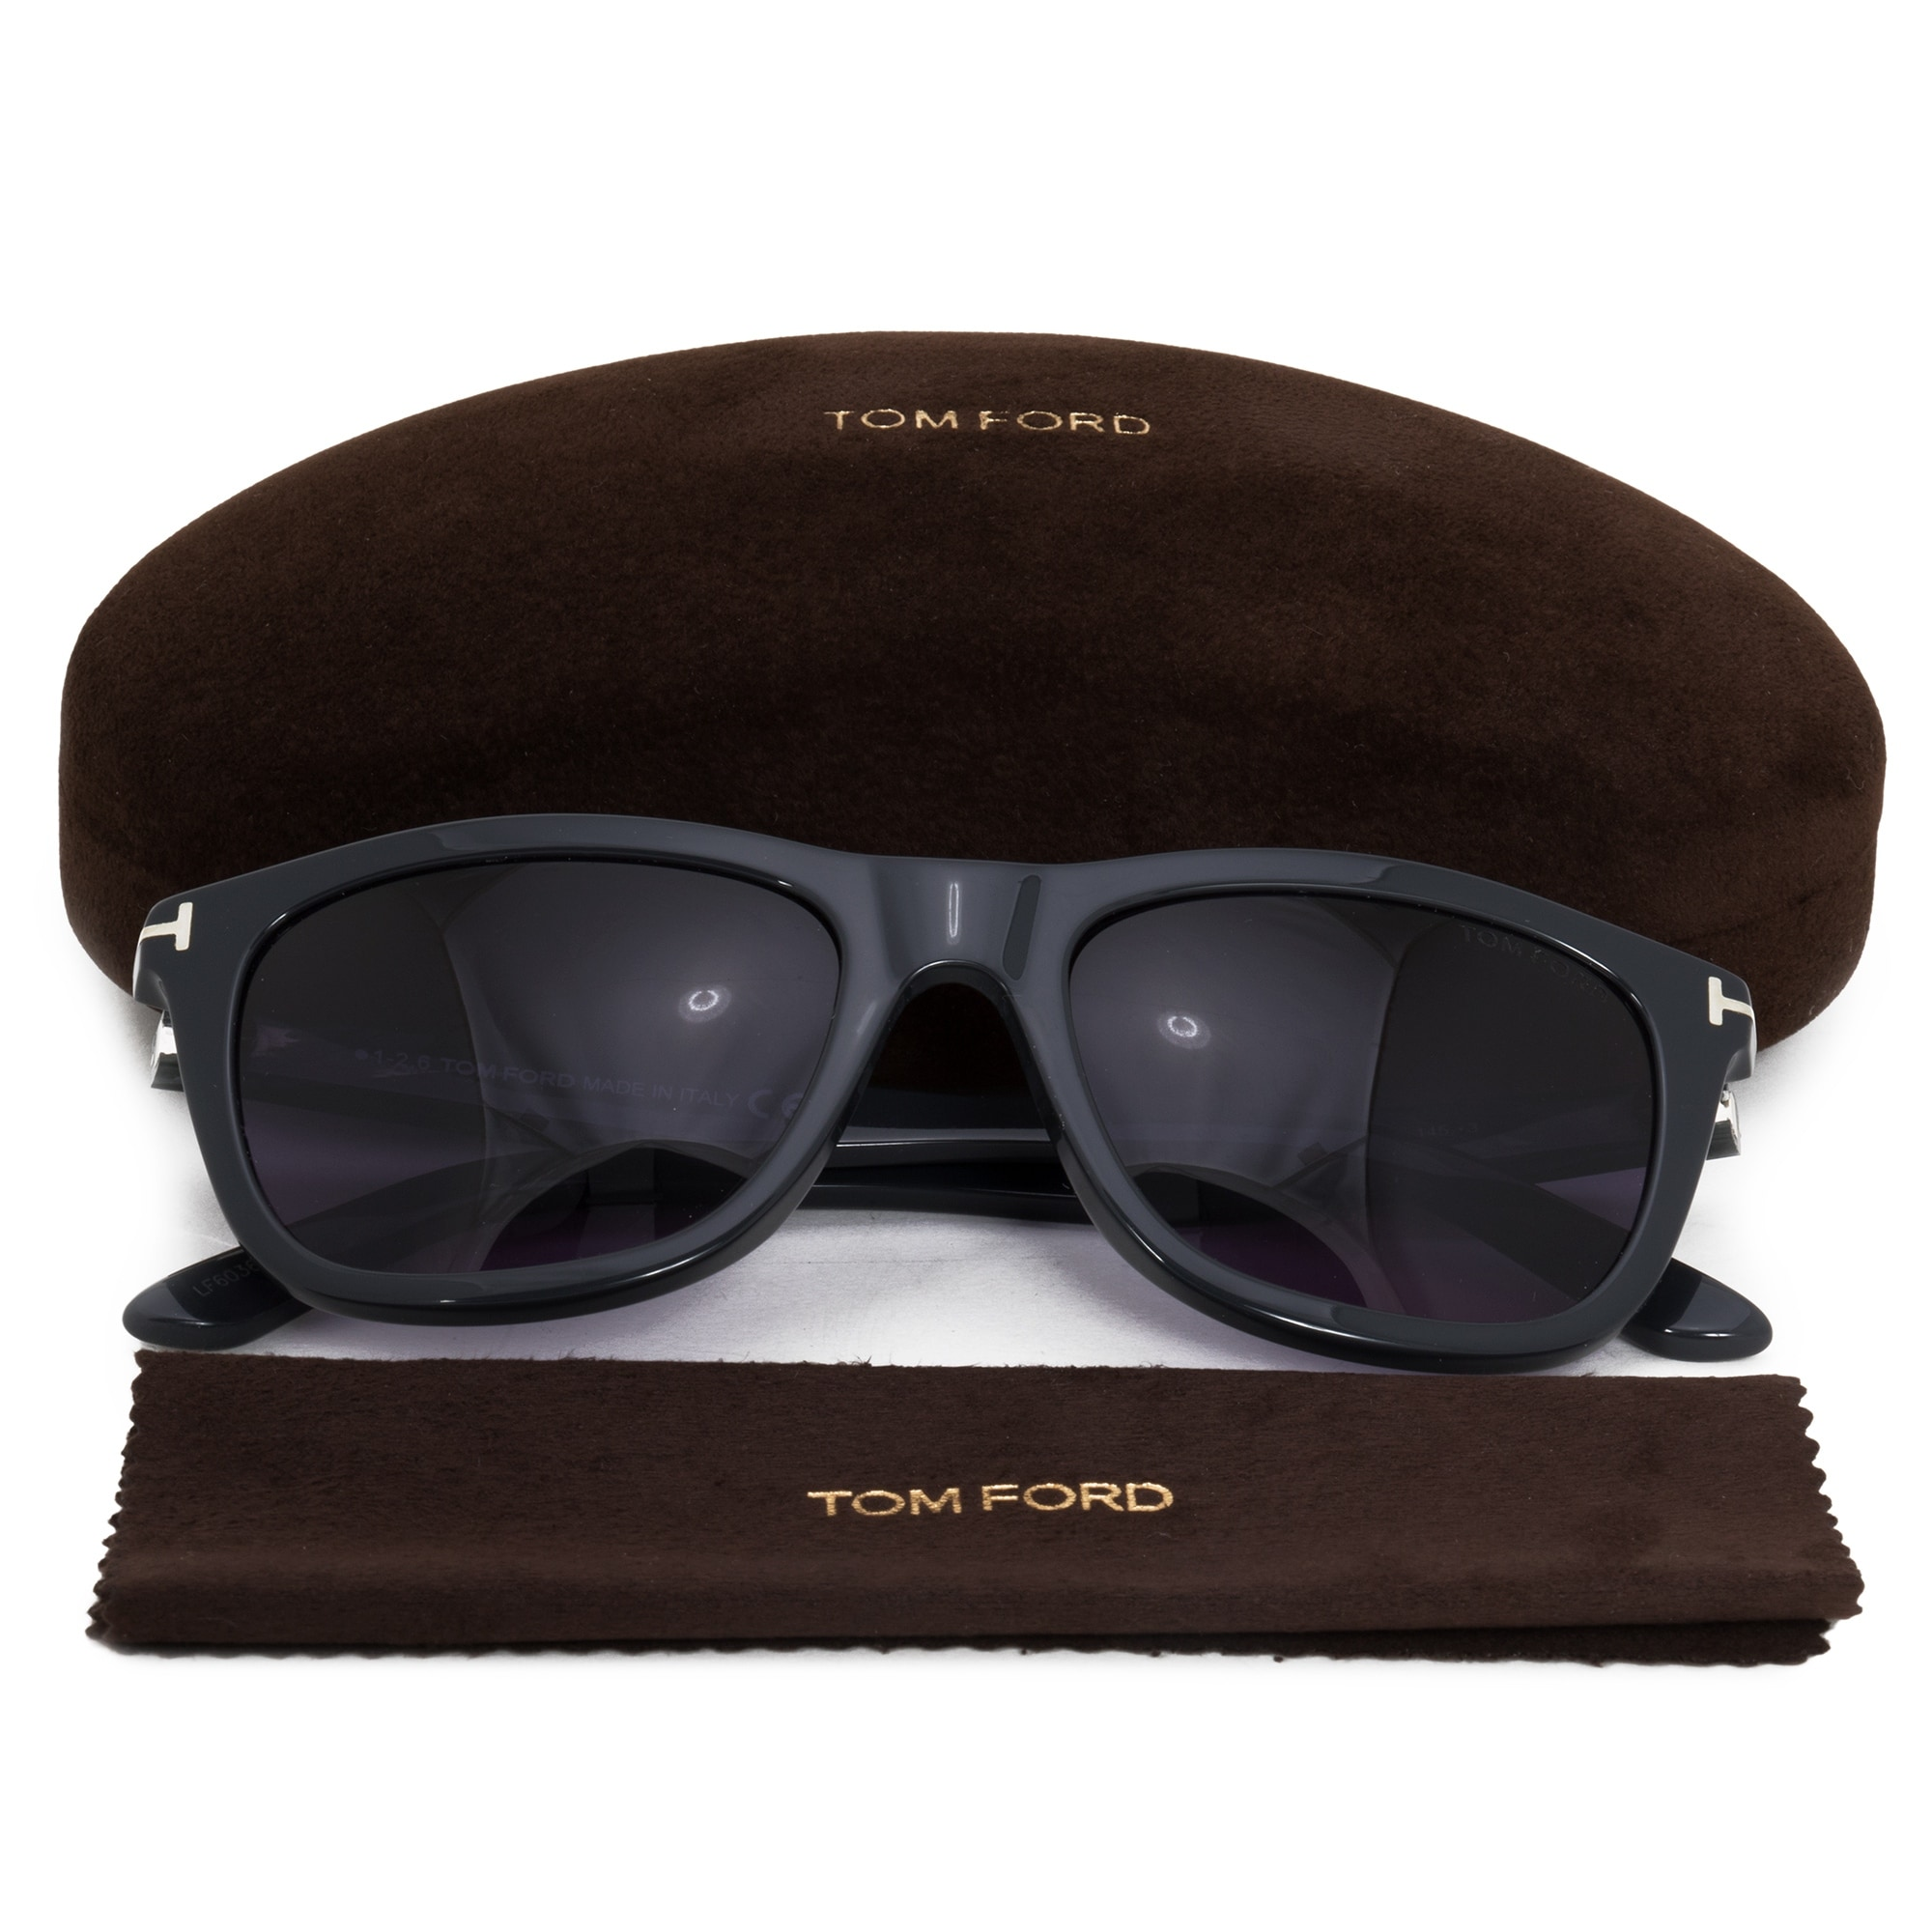 f45ef985c7a Shop Tom Ford Andrew Wayfarer Sunglasses FT0500 20V 54 - Free Shipping  Today - Overstock - 21408678